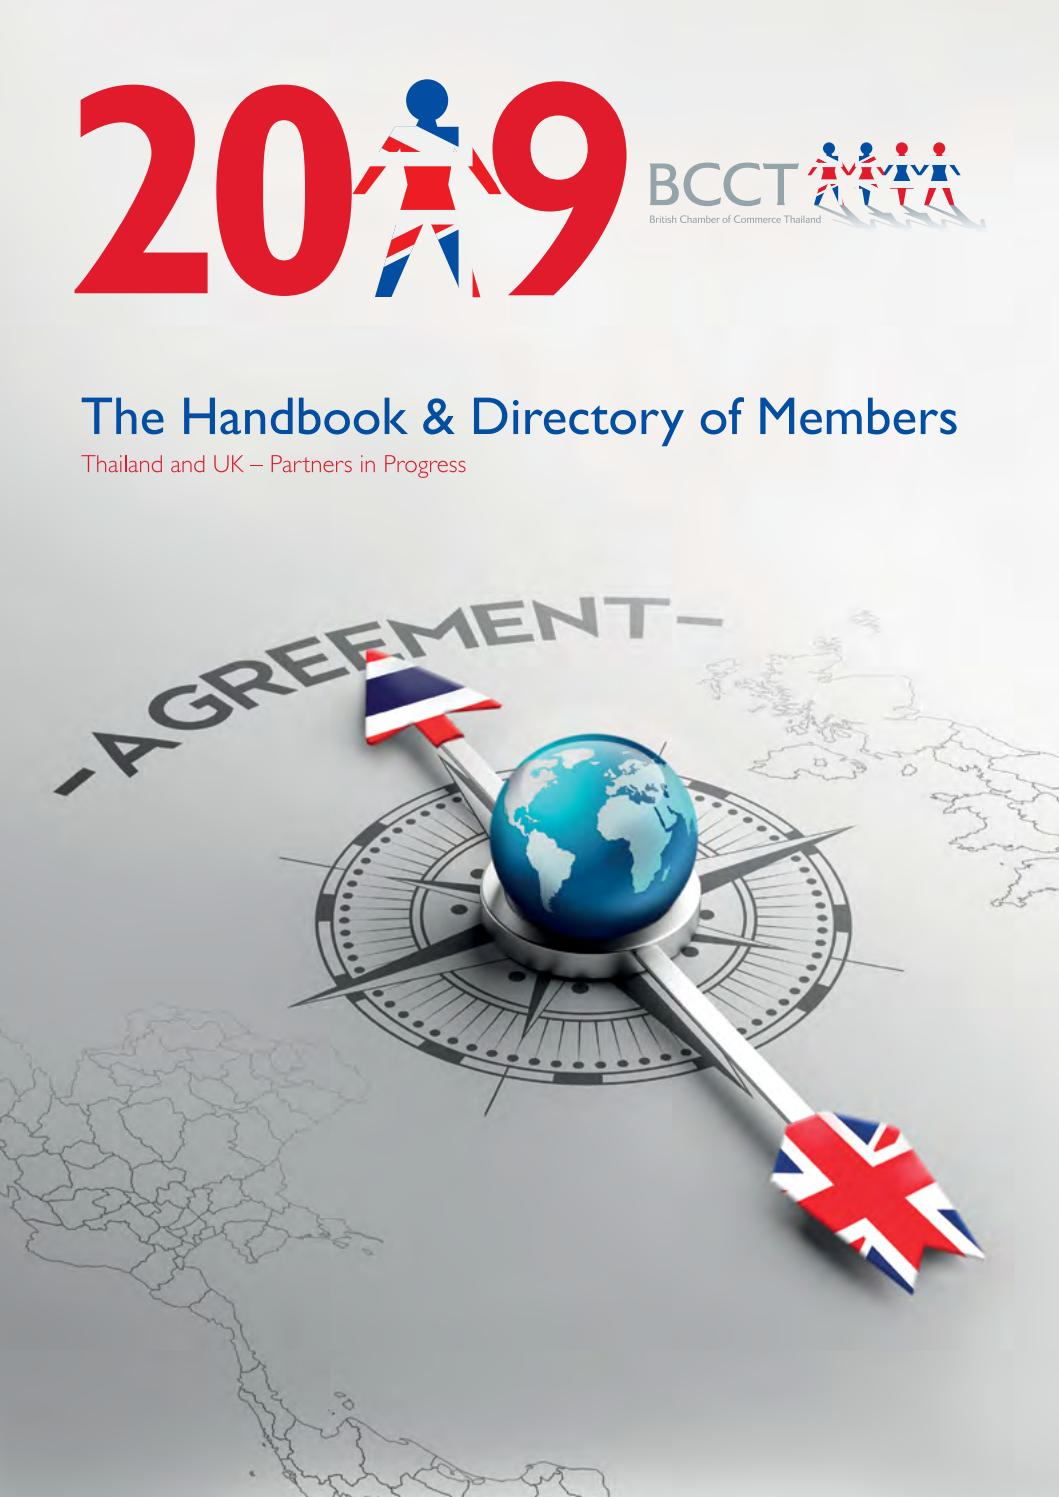 The British Chamber Of Commerce Handbook Directory Of